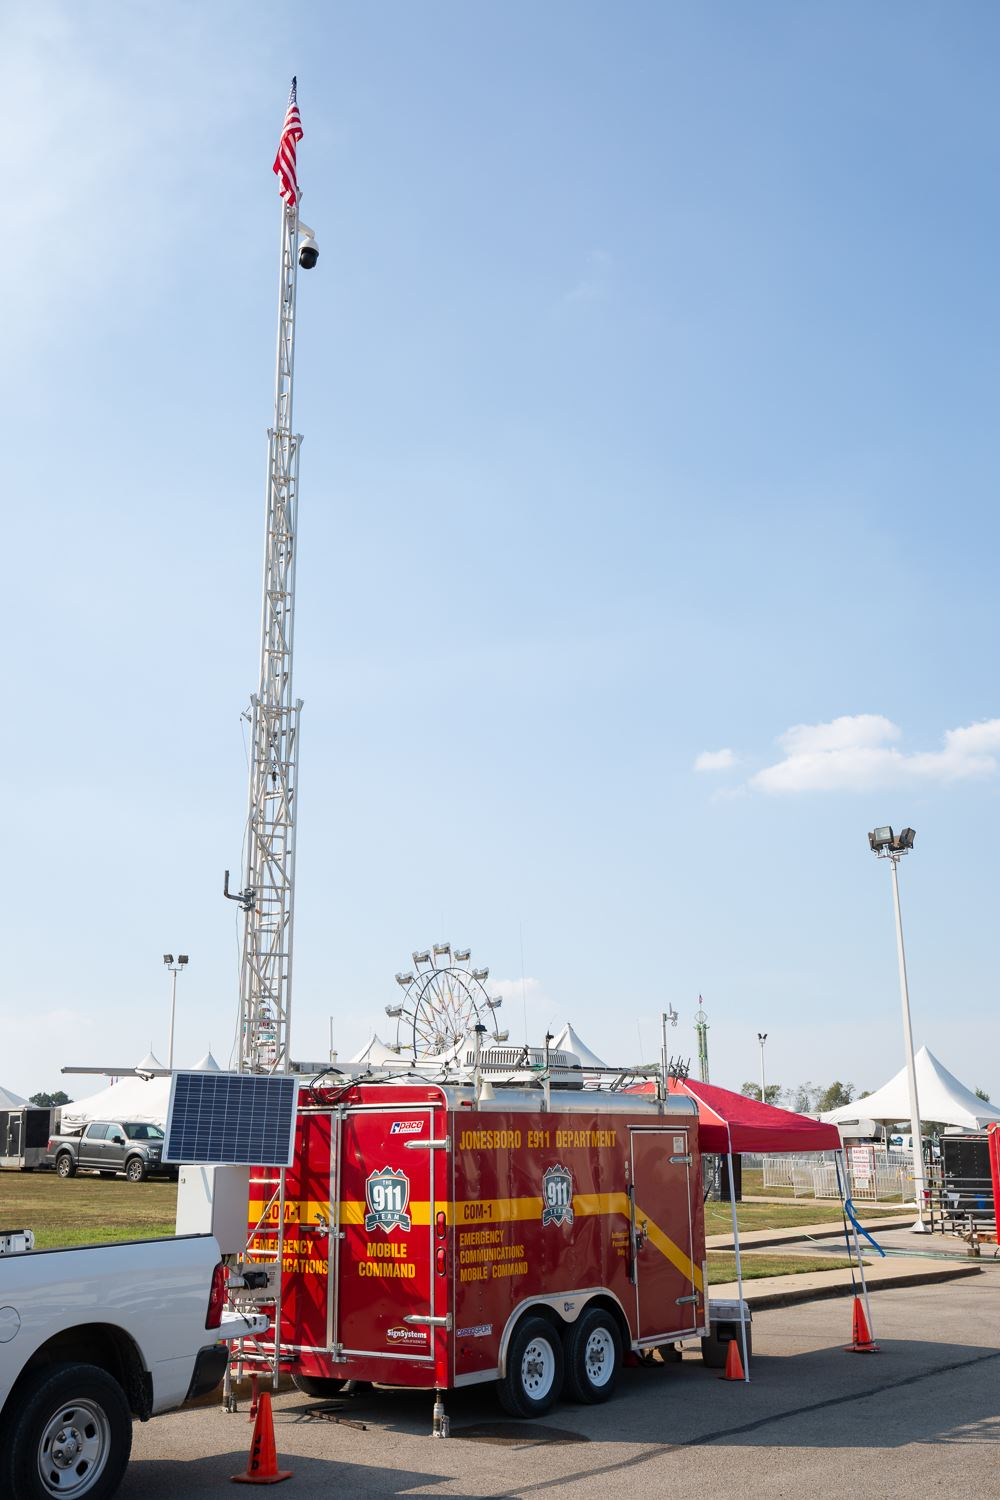 E-911 Mobile Command set up at the Northeast Arkansas District Fair.